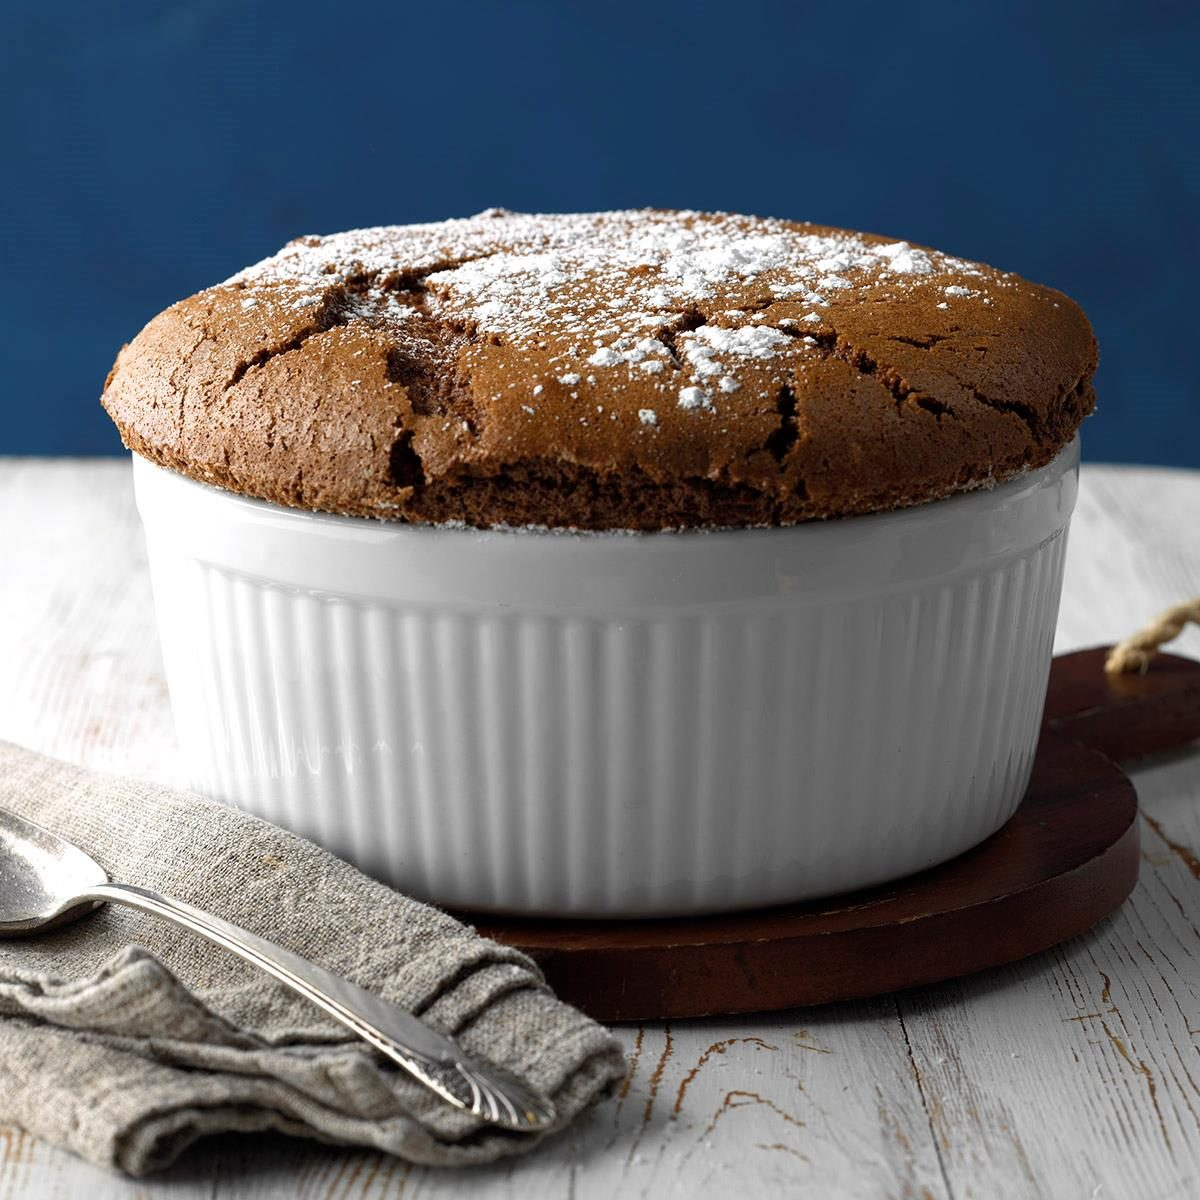 France: Chocolate Souffle